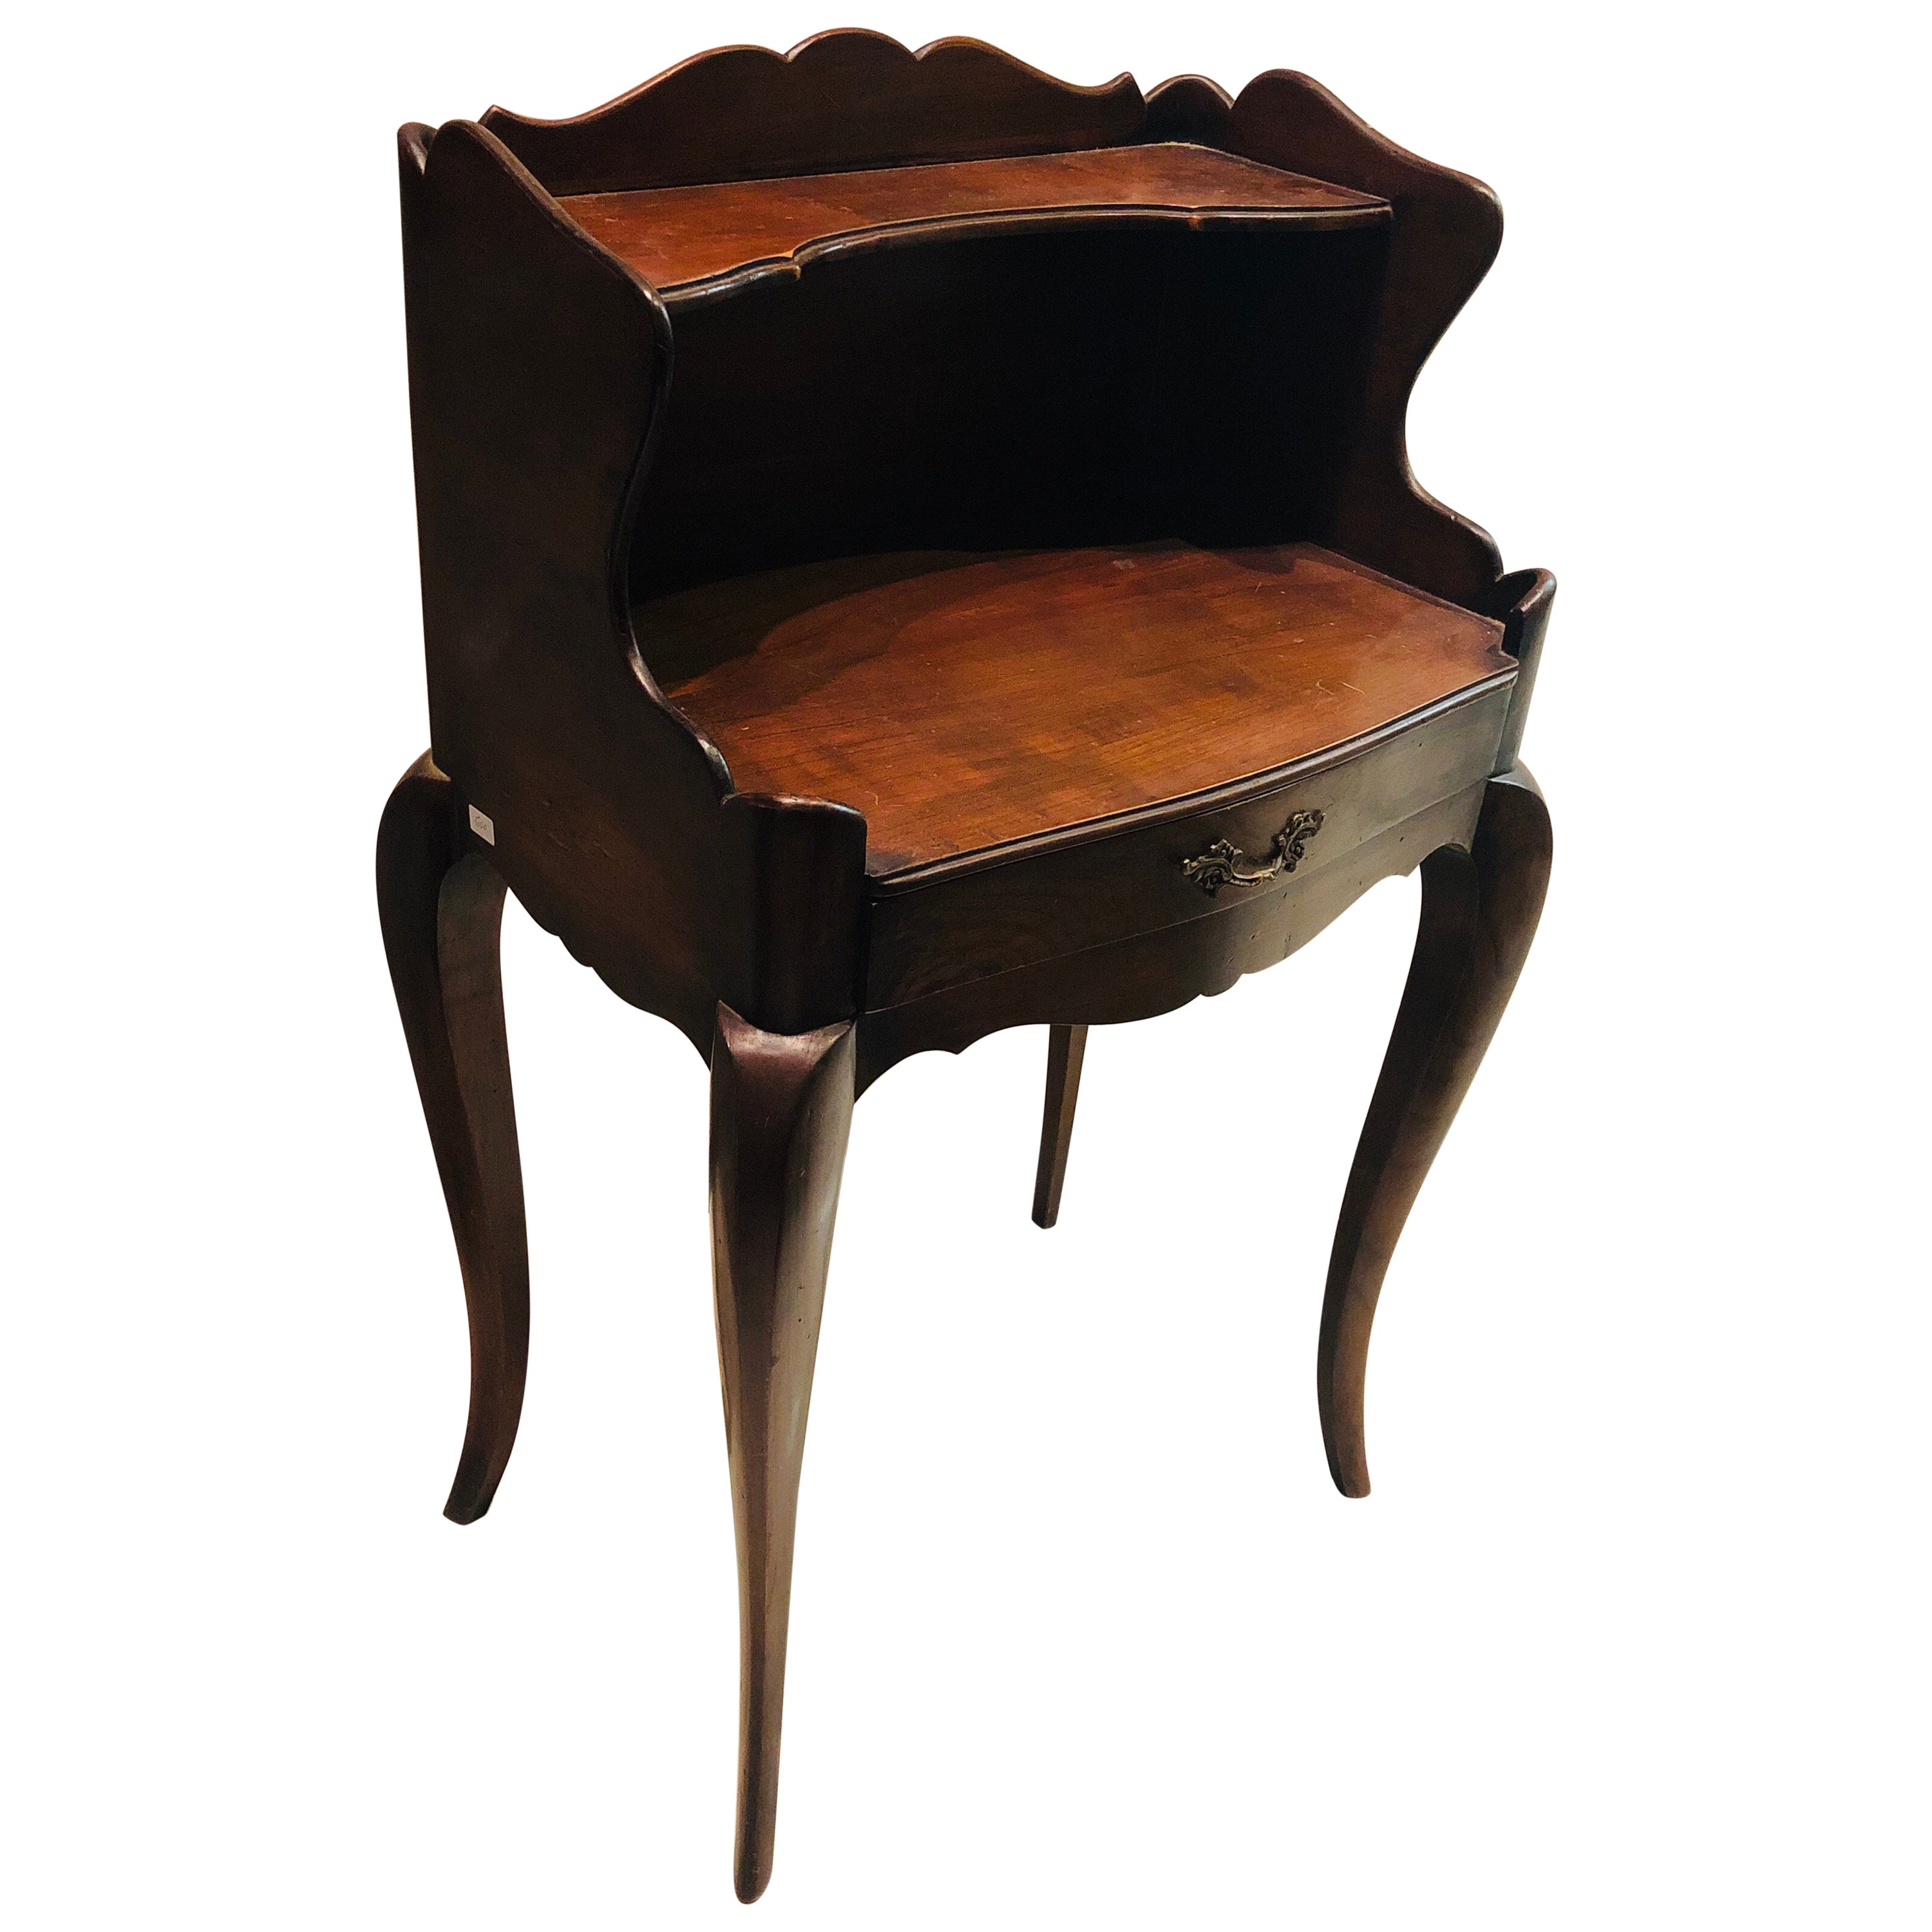 19th Century French Pair of Mahogany Nightstands Side Tables in Louis XV Style